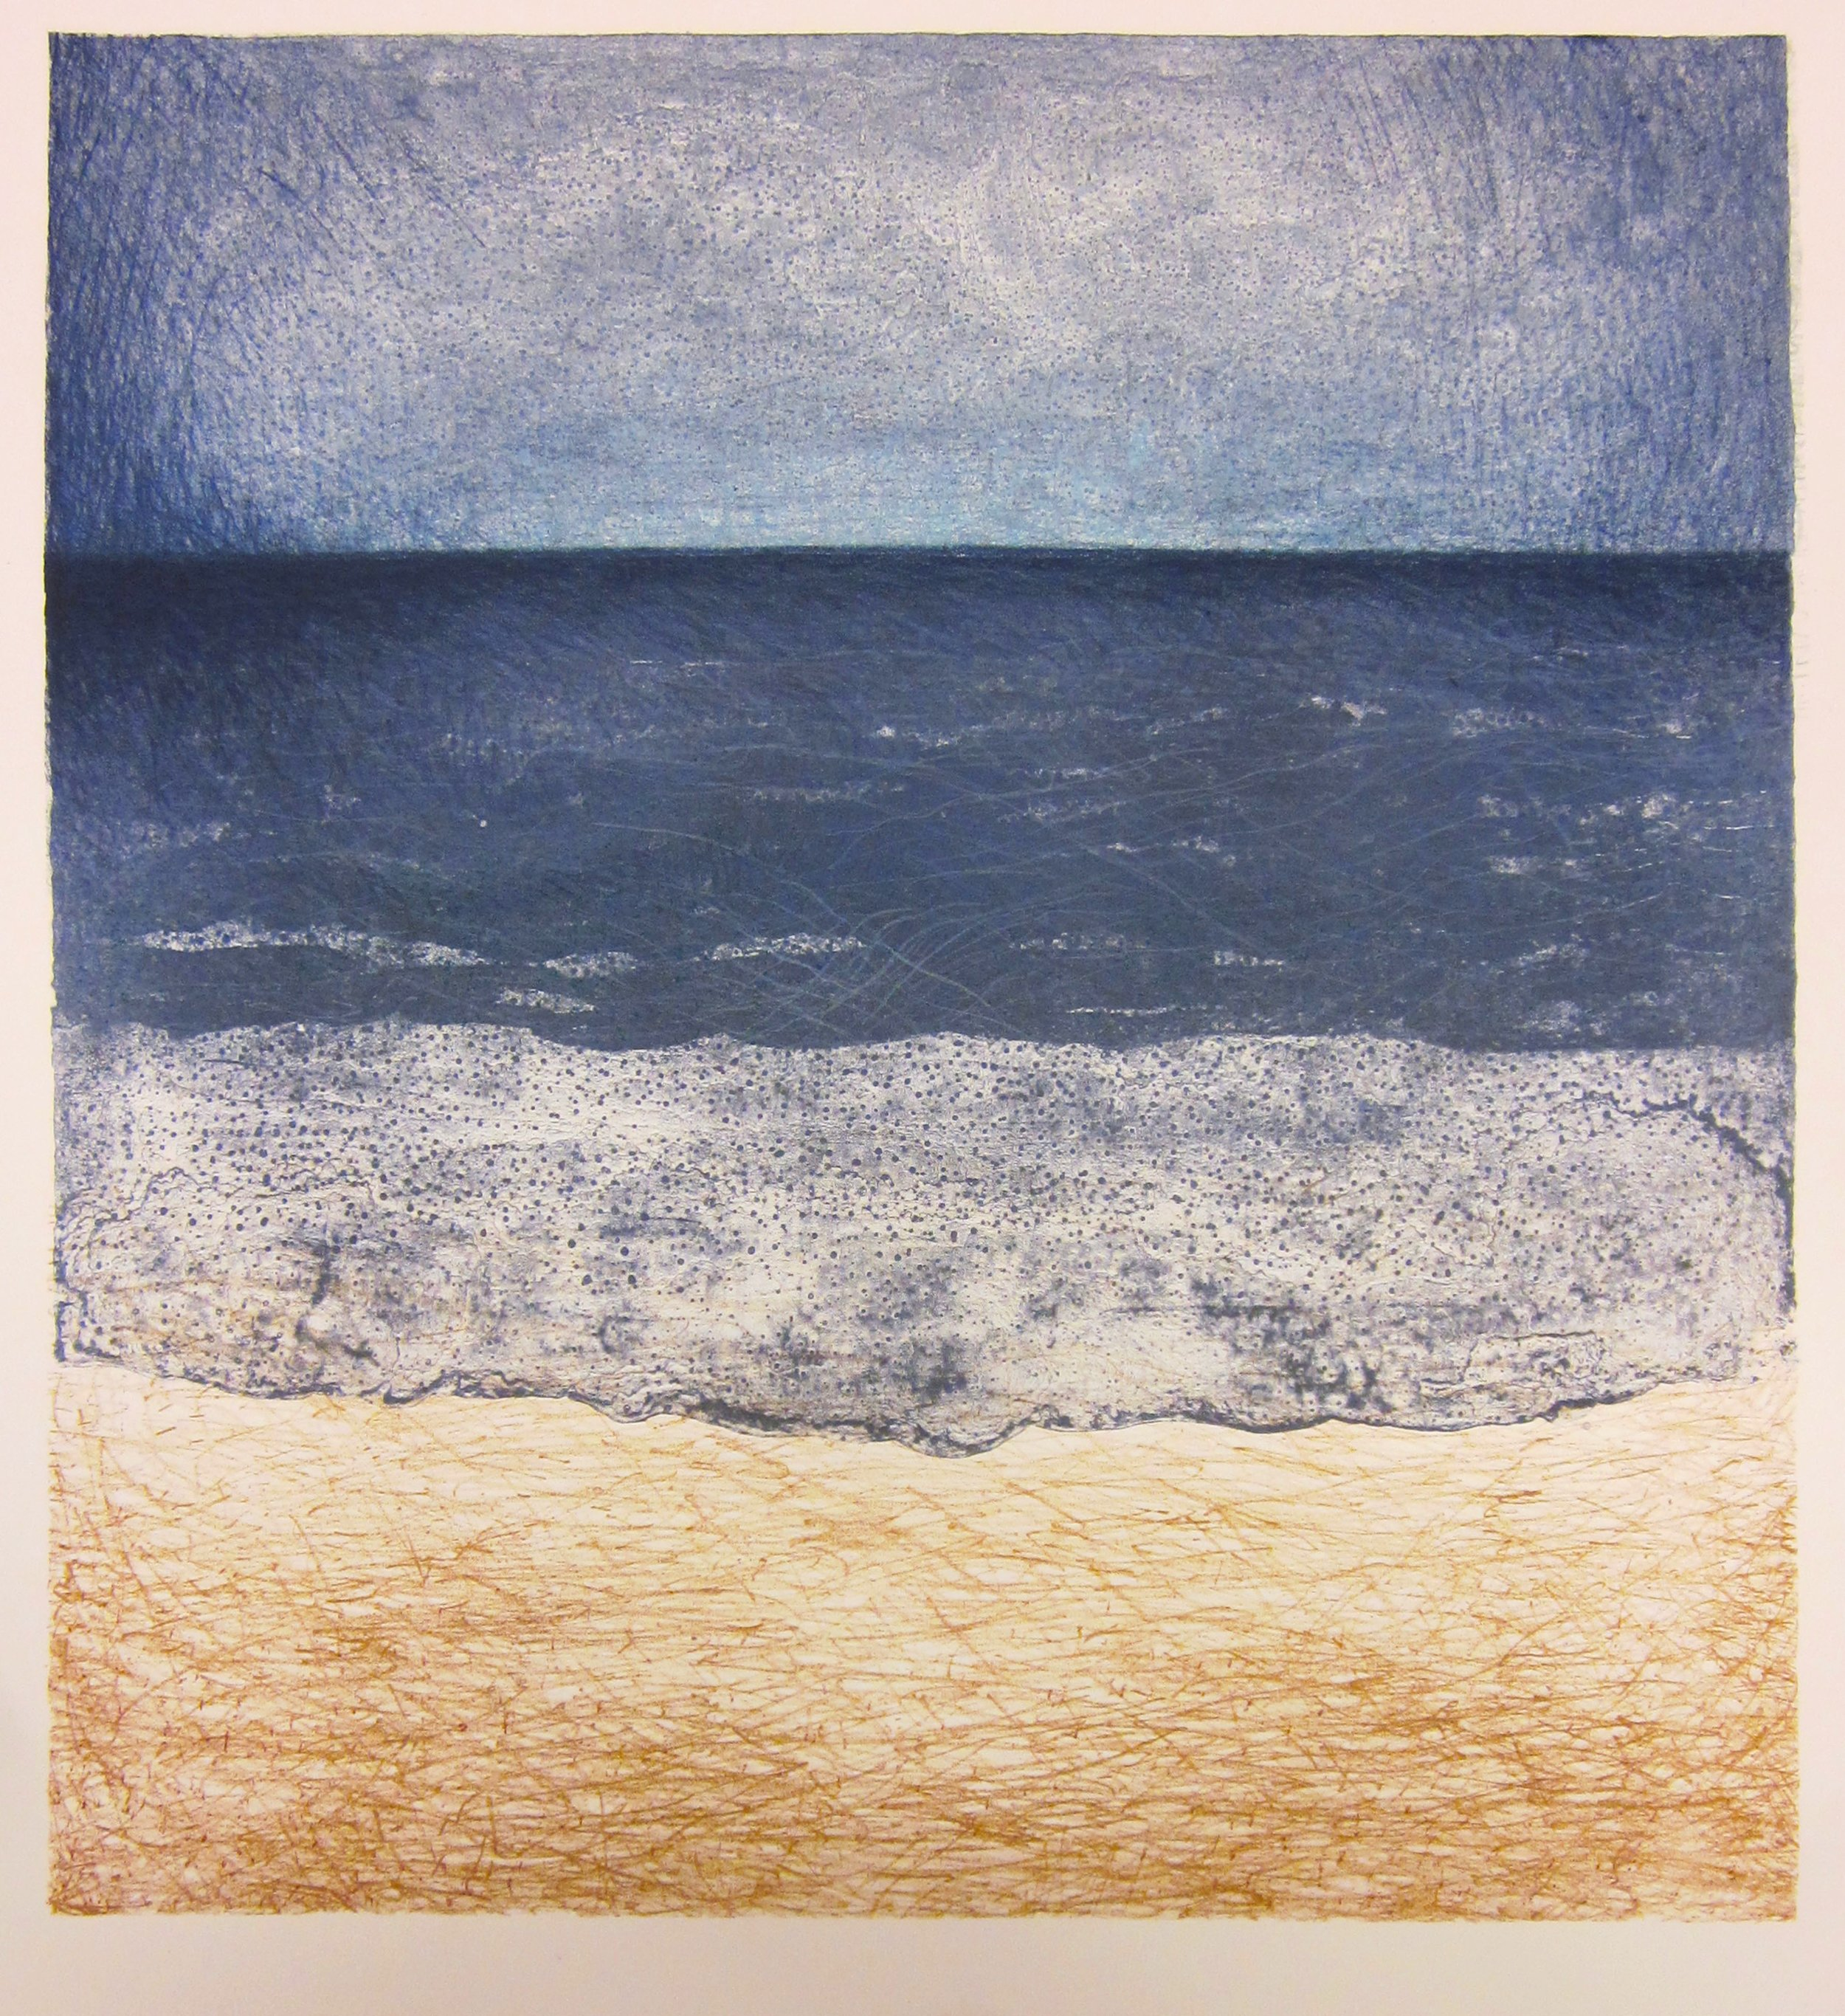 Horizons, Stone and Plate Lithograph, 17 x 15 in, 2013